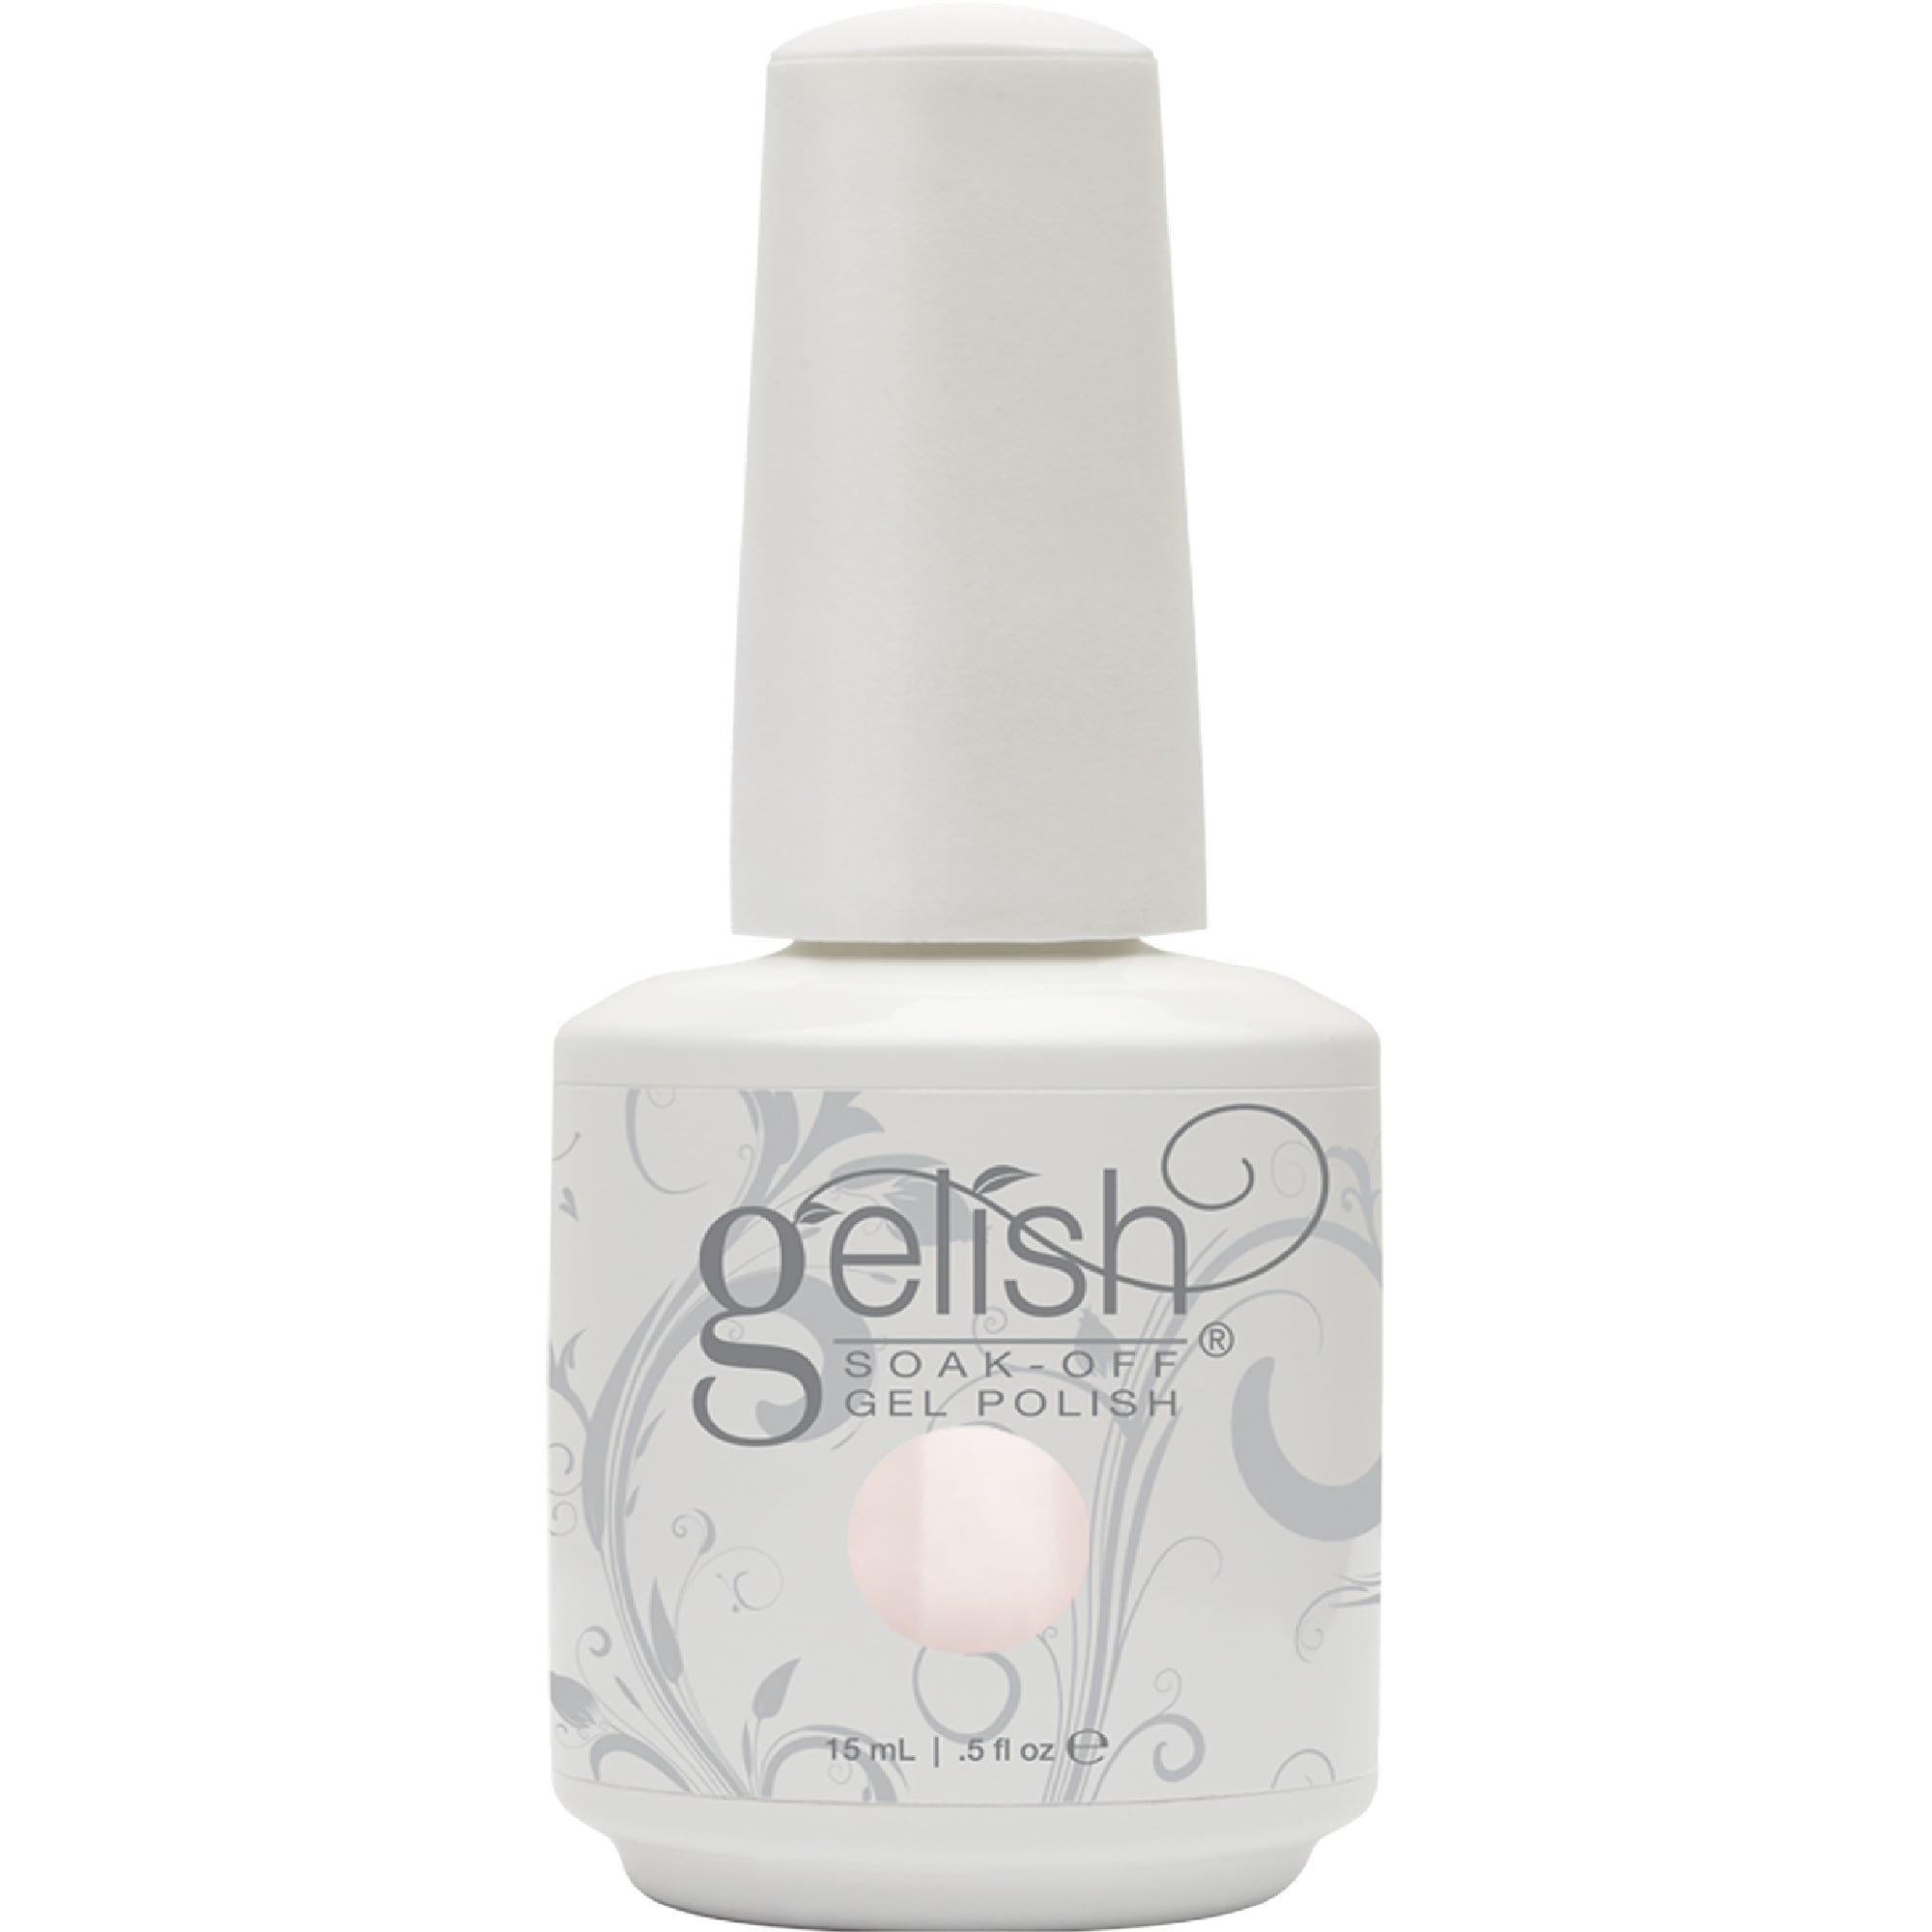 Gelish Soak-Off Gel Nail Polish - Simple Sheer 15ml